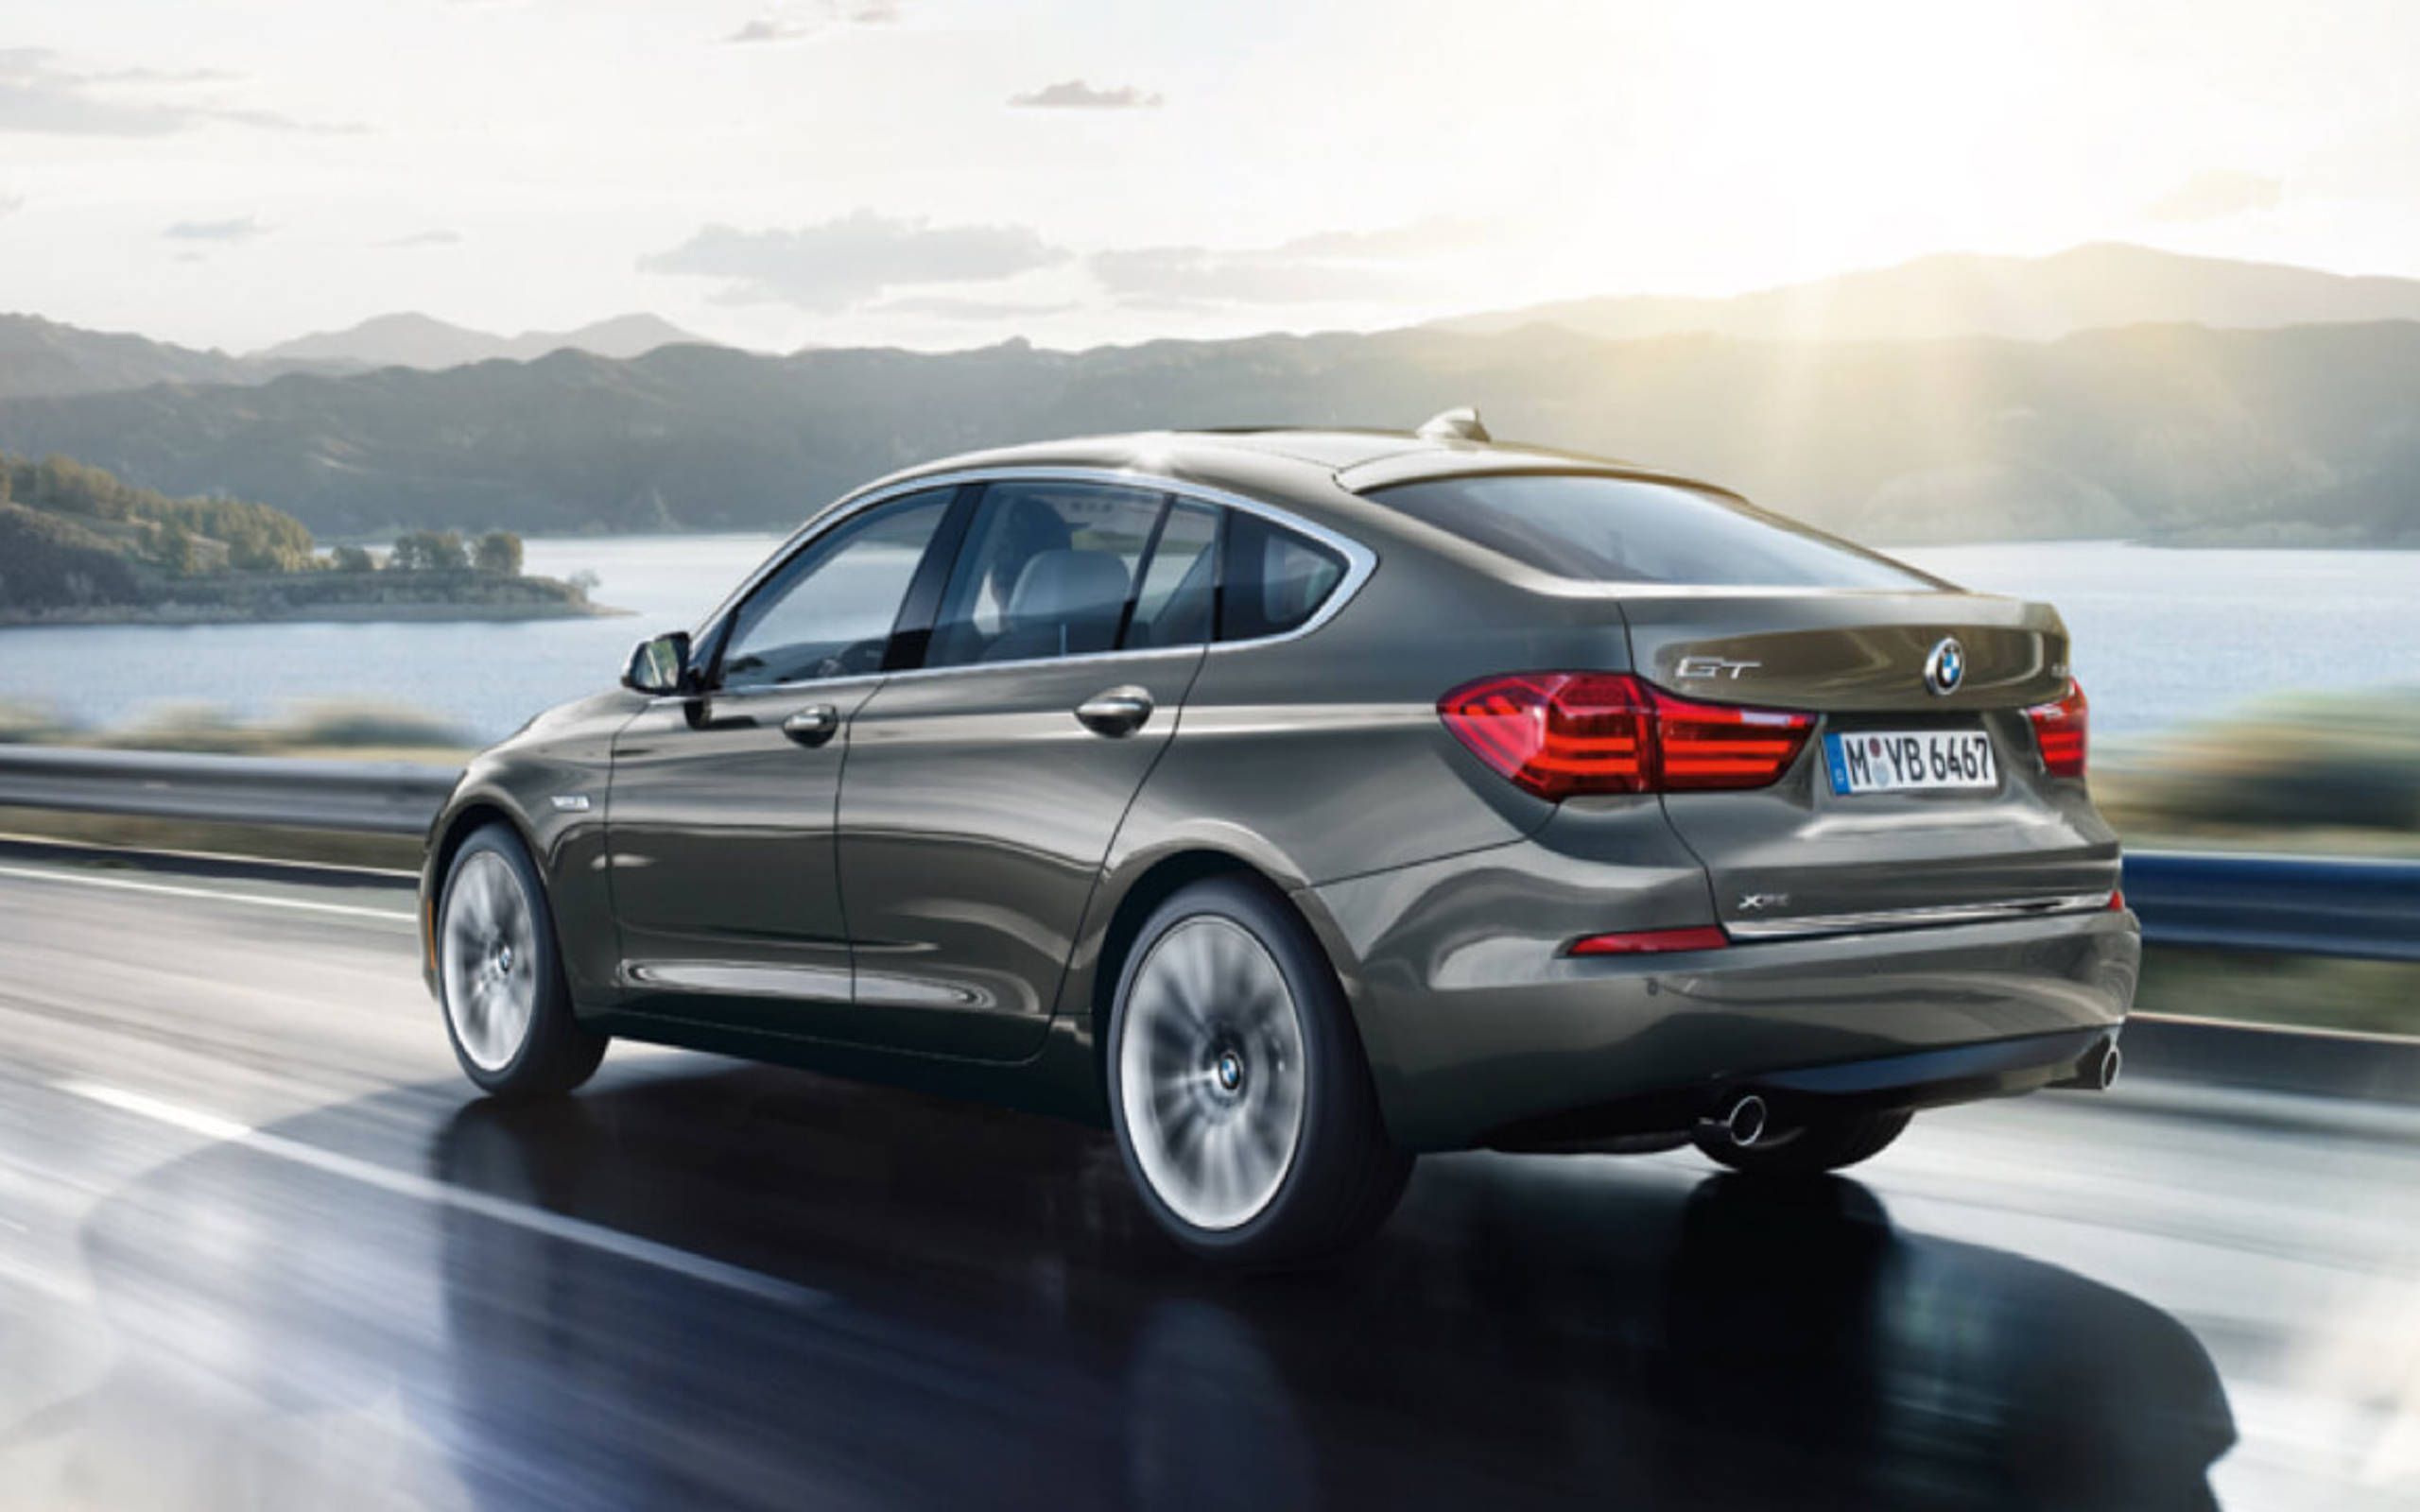 Bmw 5 Series Gt Gets A New Name And Redesign The 6 Series Gt